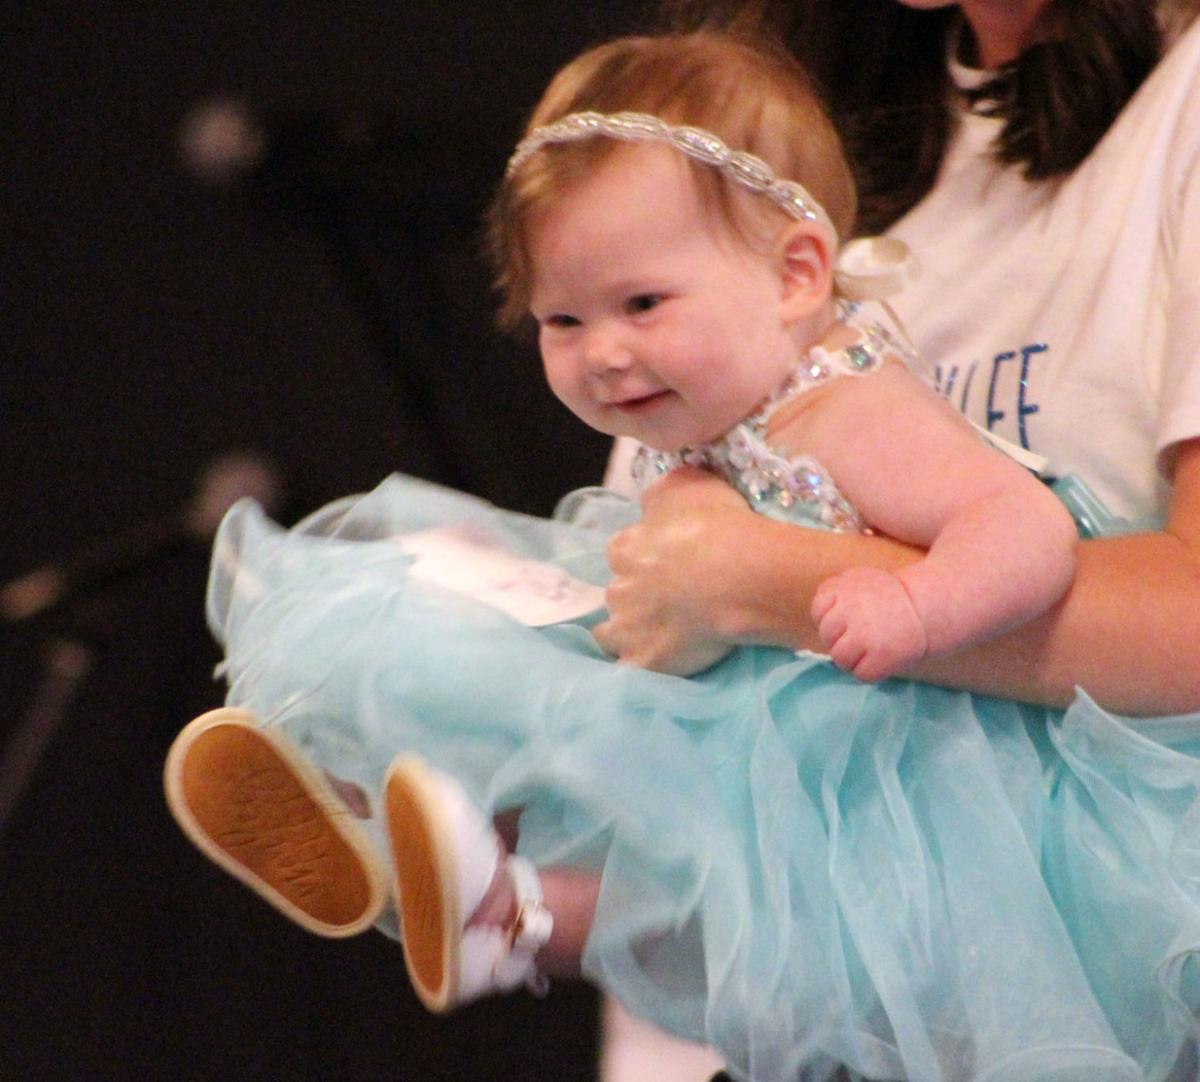 PHOTO GALLERY: 2019 Little Miss Sweetcorn Pageant